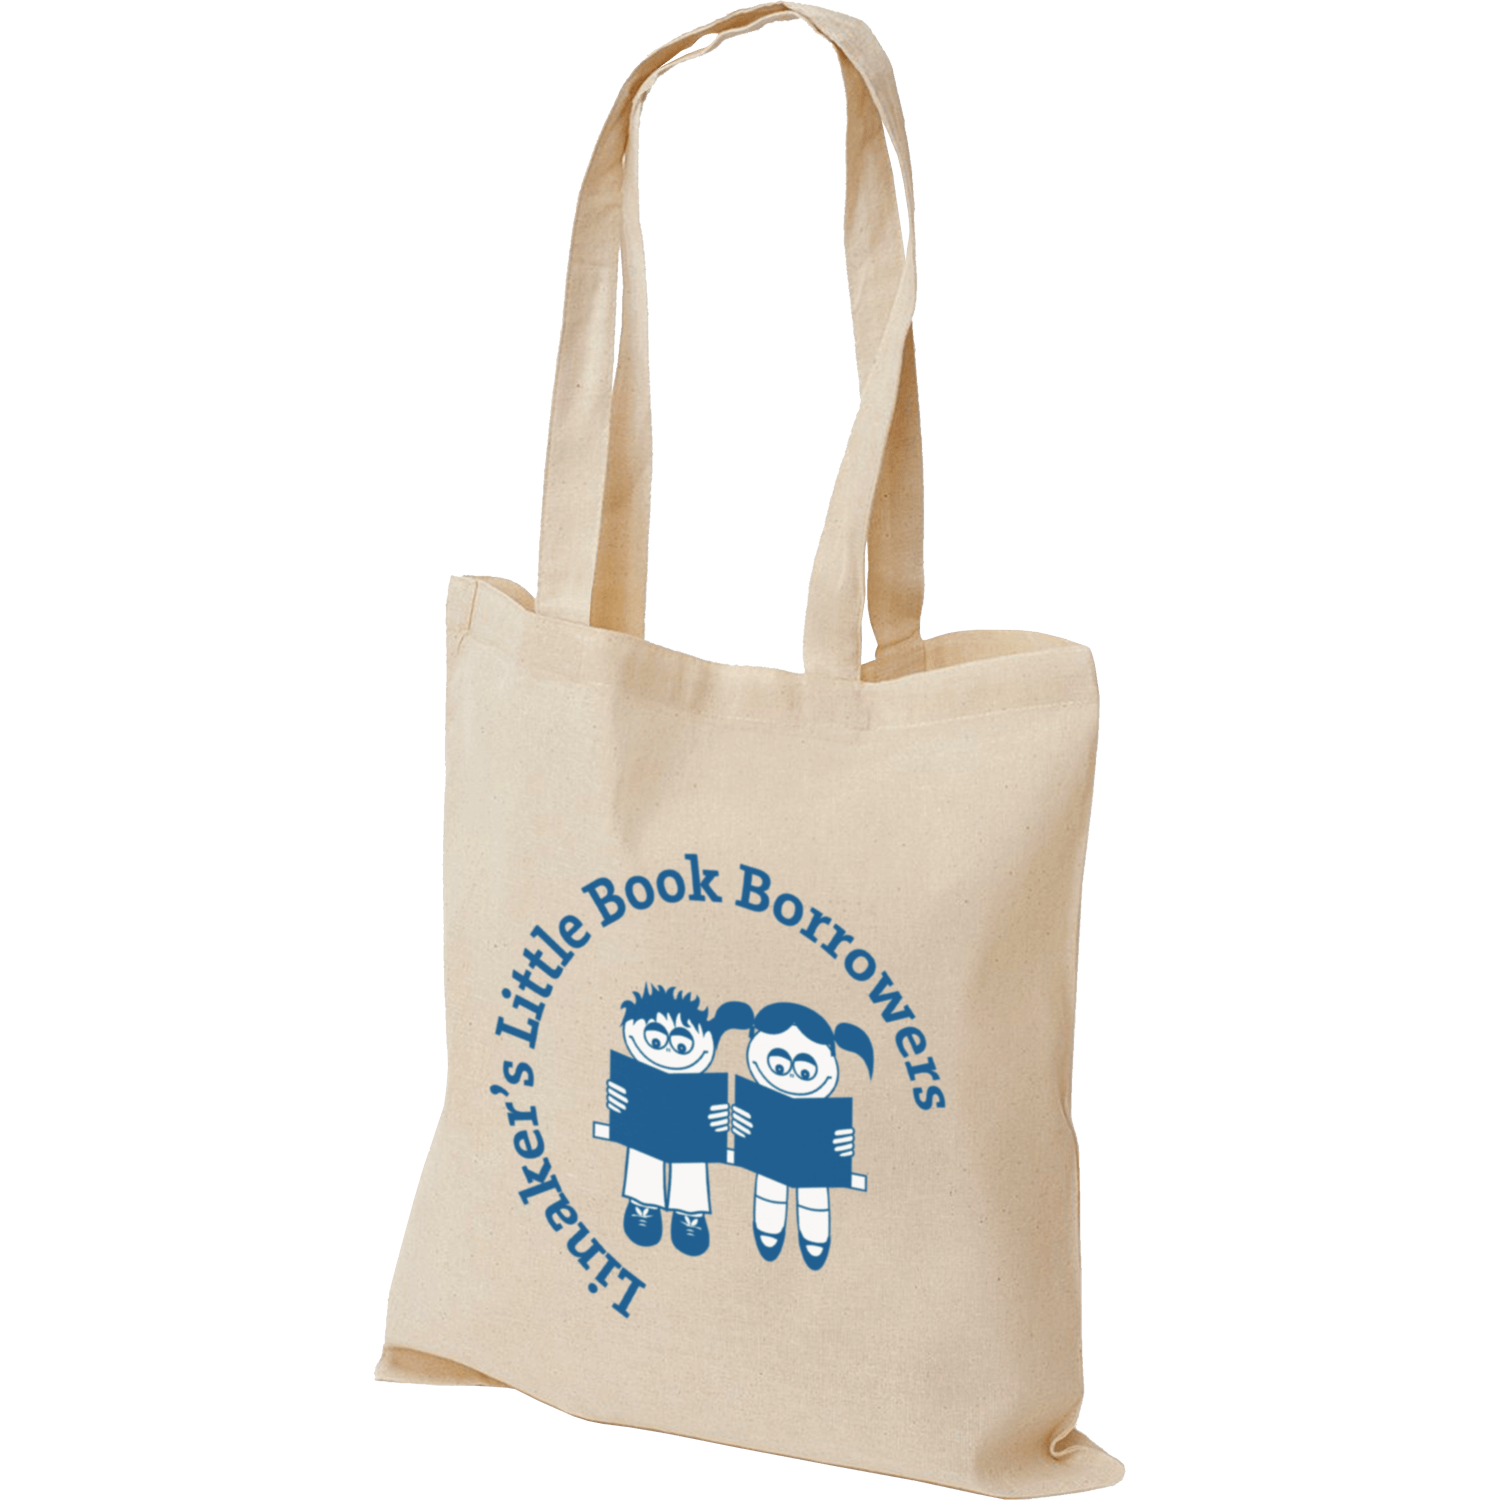 Cotton Printed Tote Bags 5oz